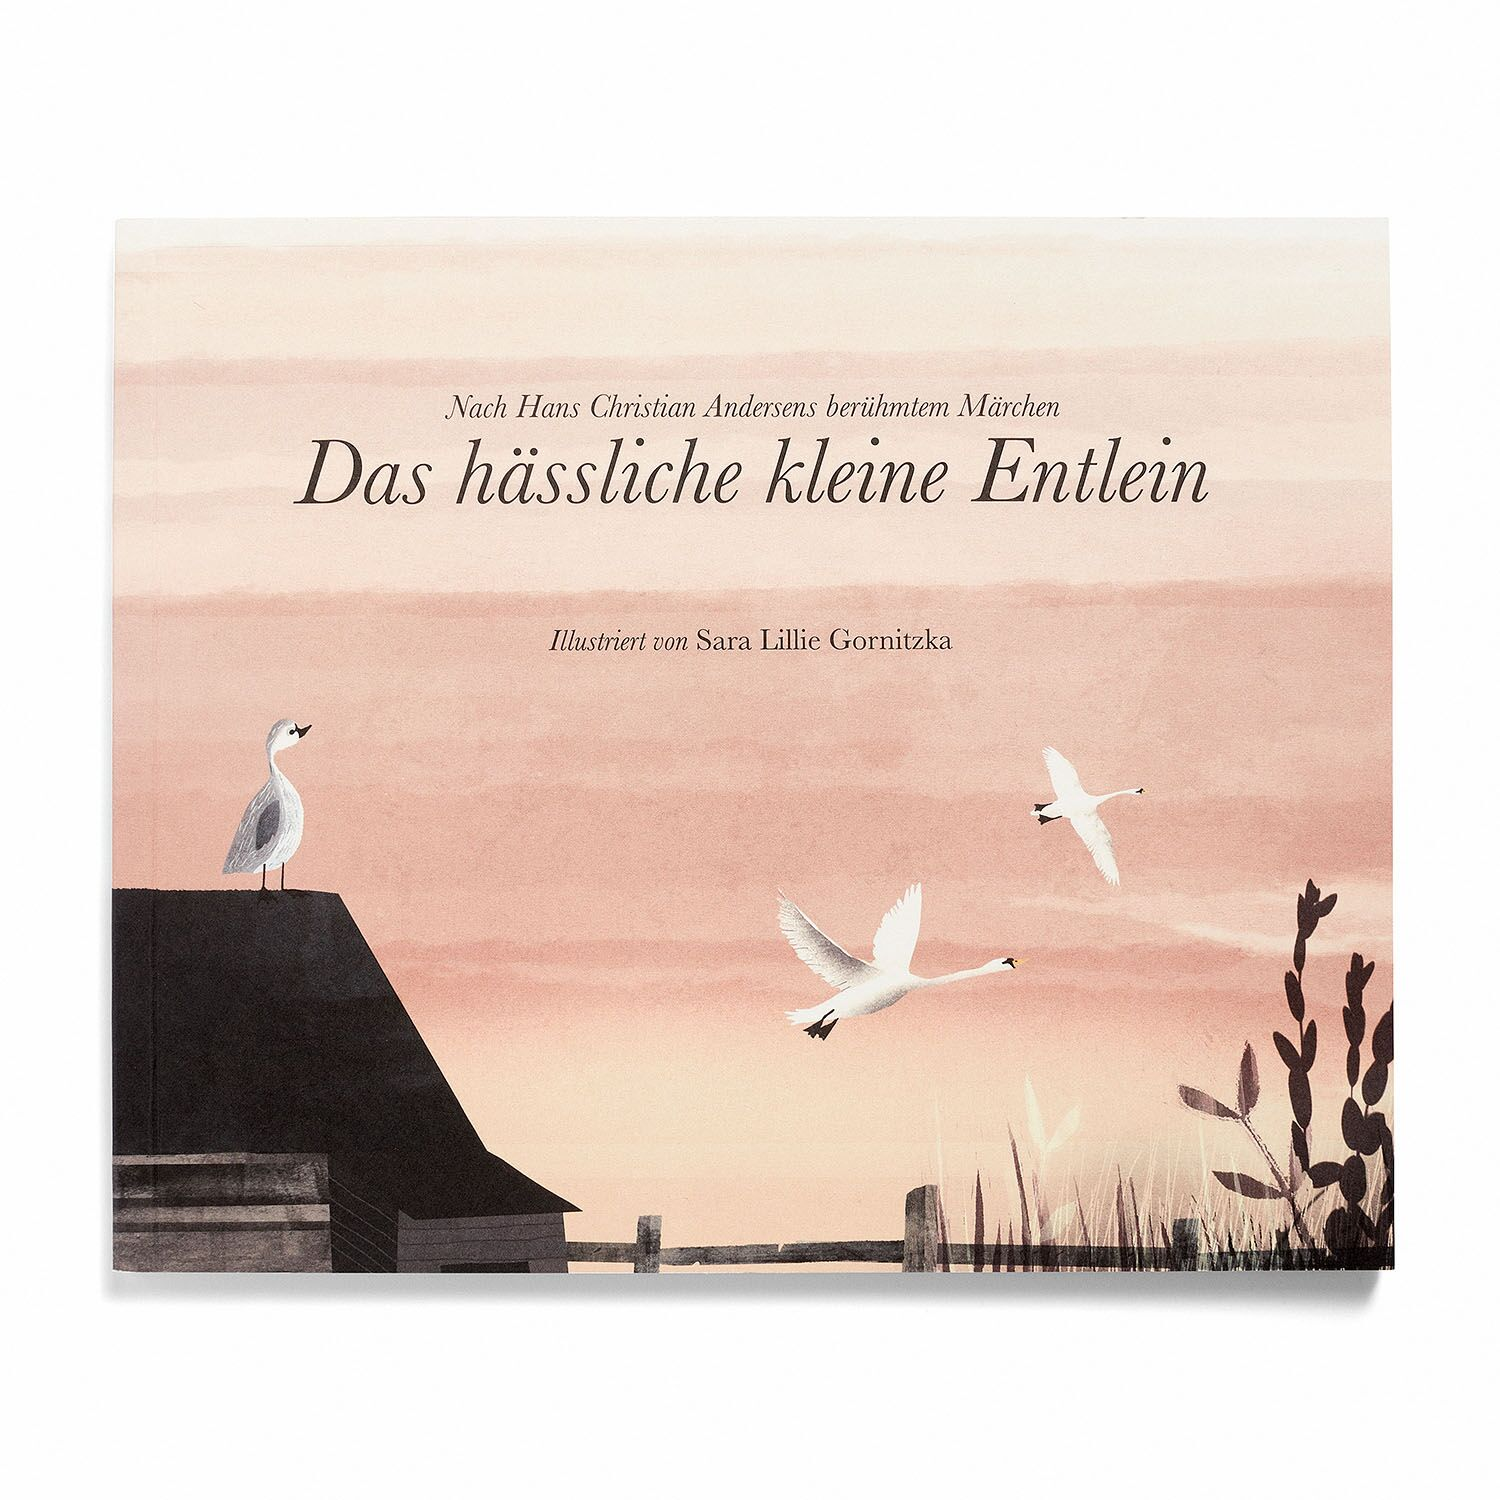 Ugly Duckling book German, hard cover -  189.00 kr